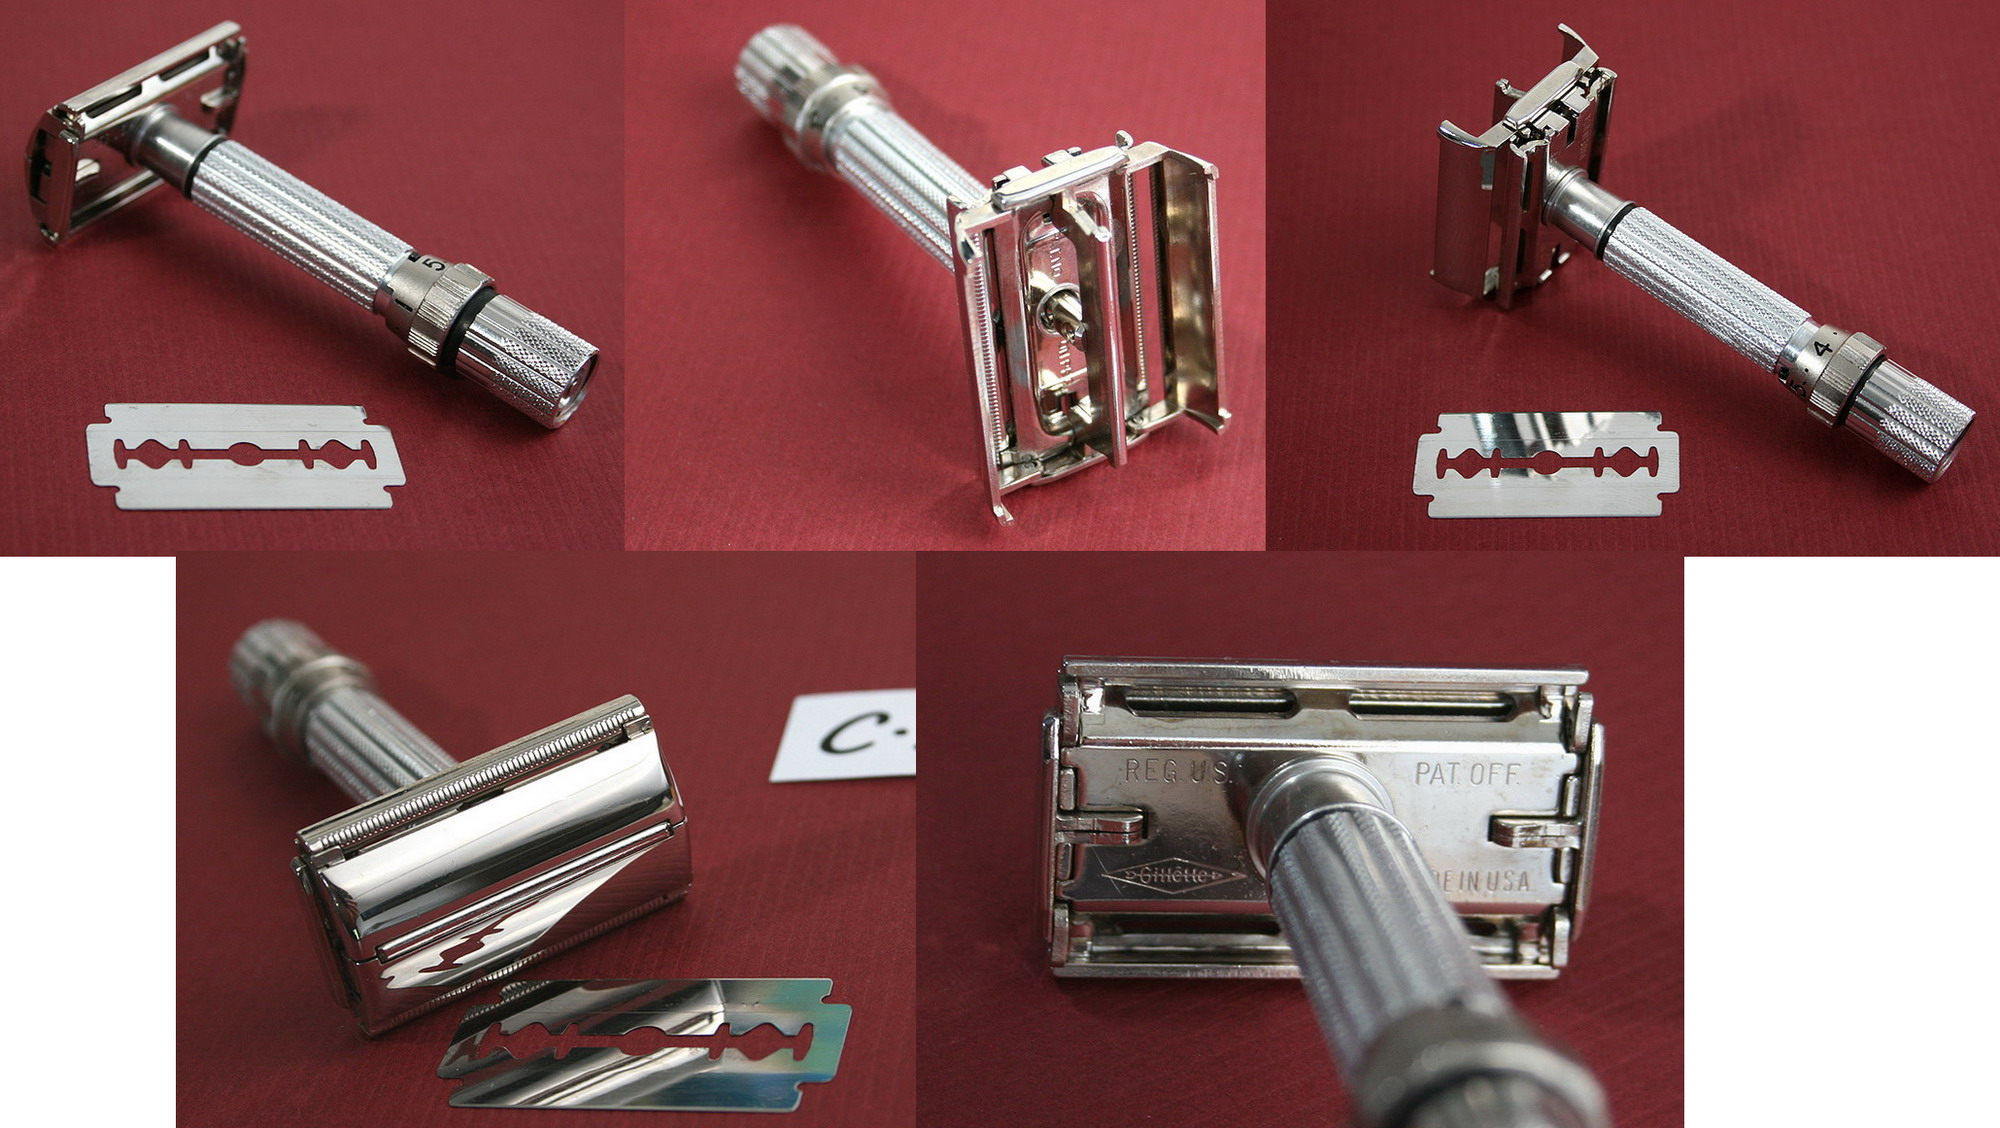 """Adjustable family"" de chez Gillette 1960s%20Prototype195%205%20settings%20from%20Aric"